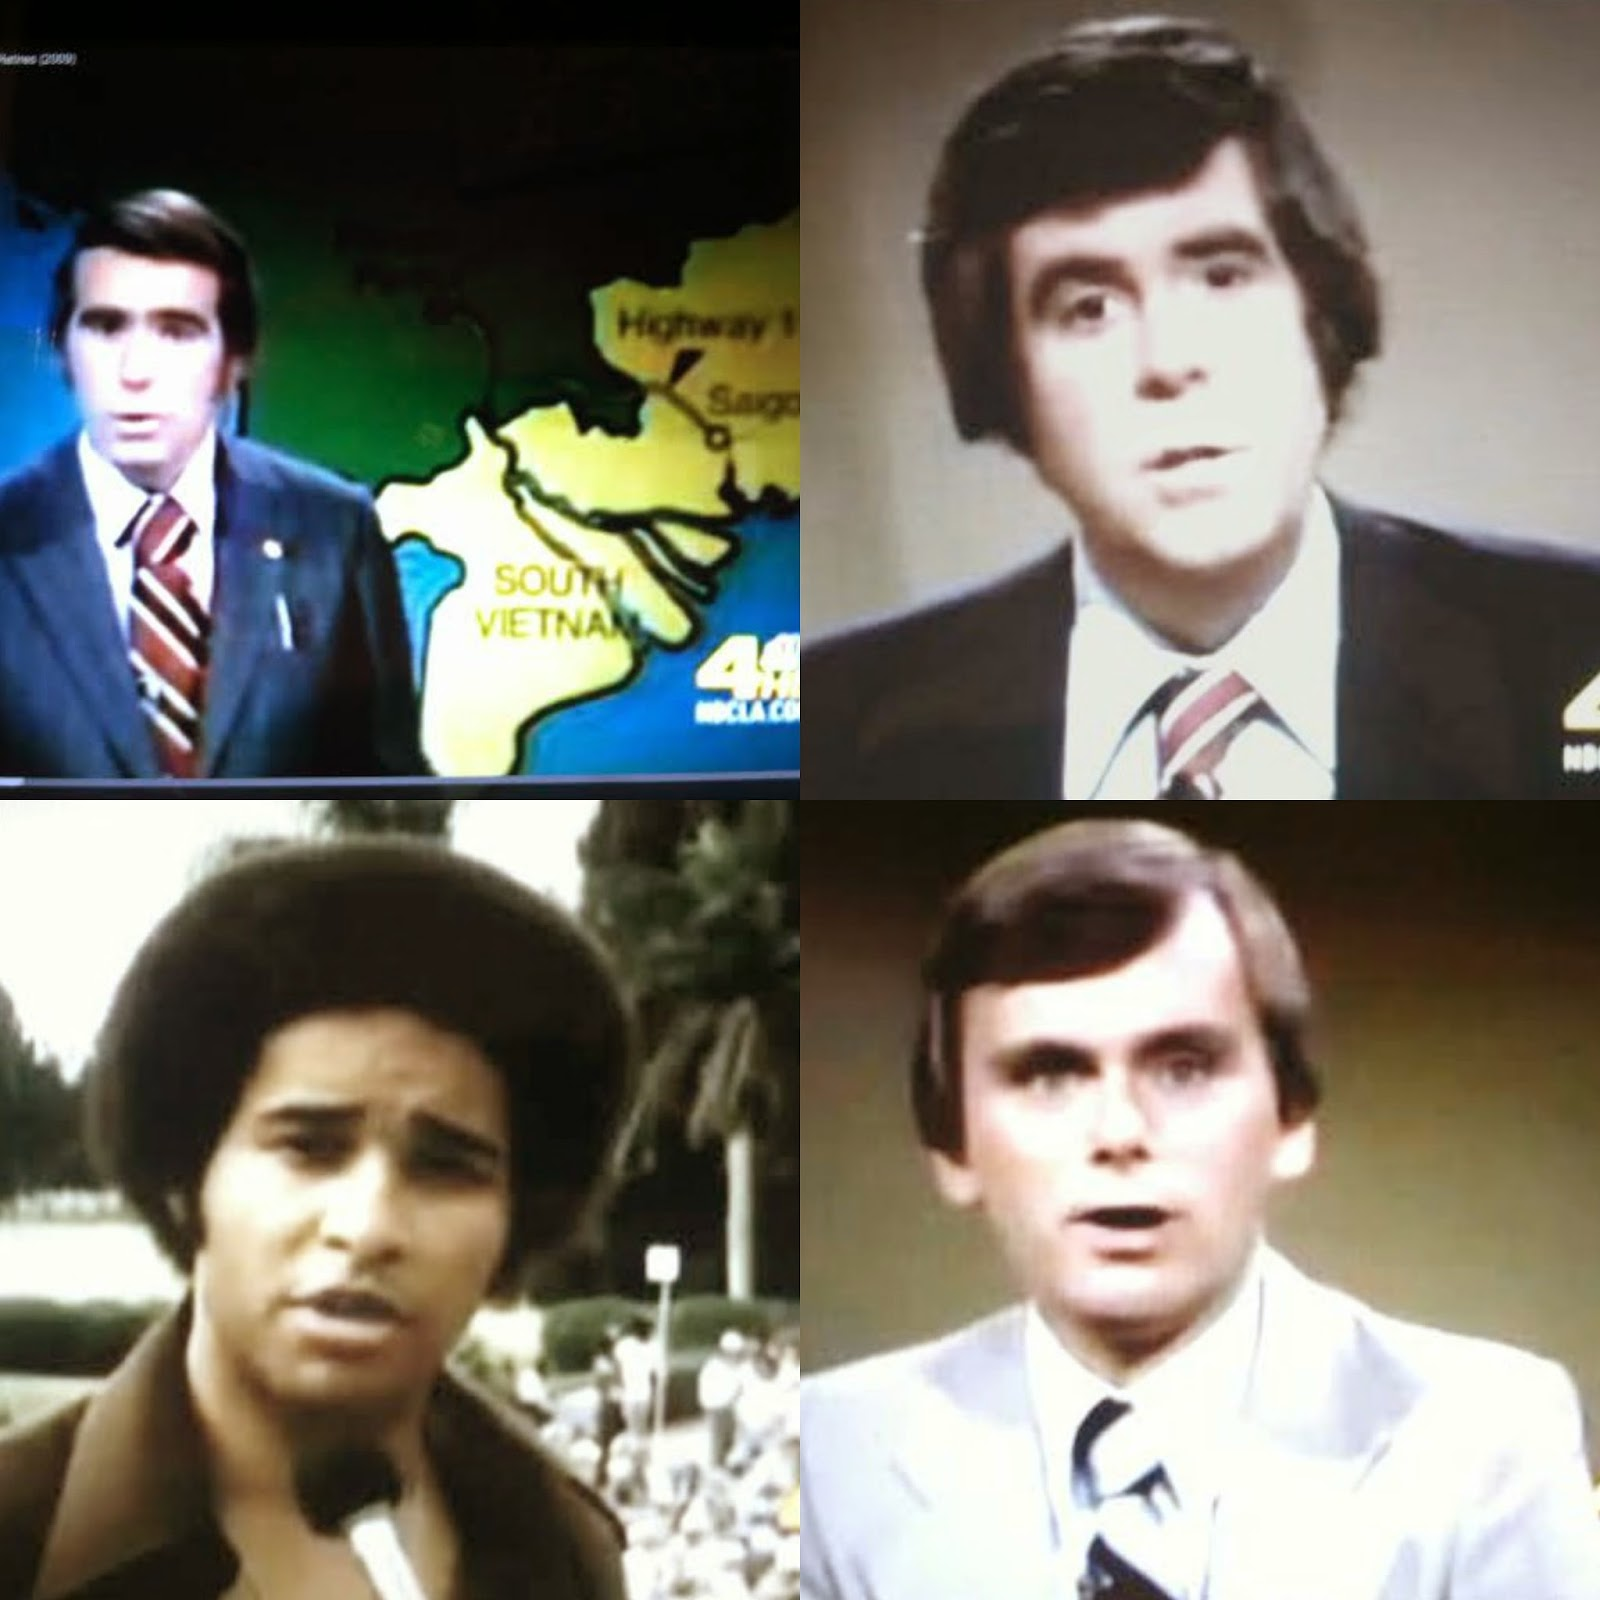 LOS ANGELES TV NEWS ANCHORS & REPORTERS